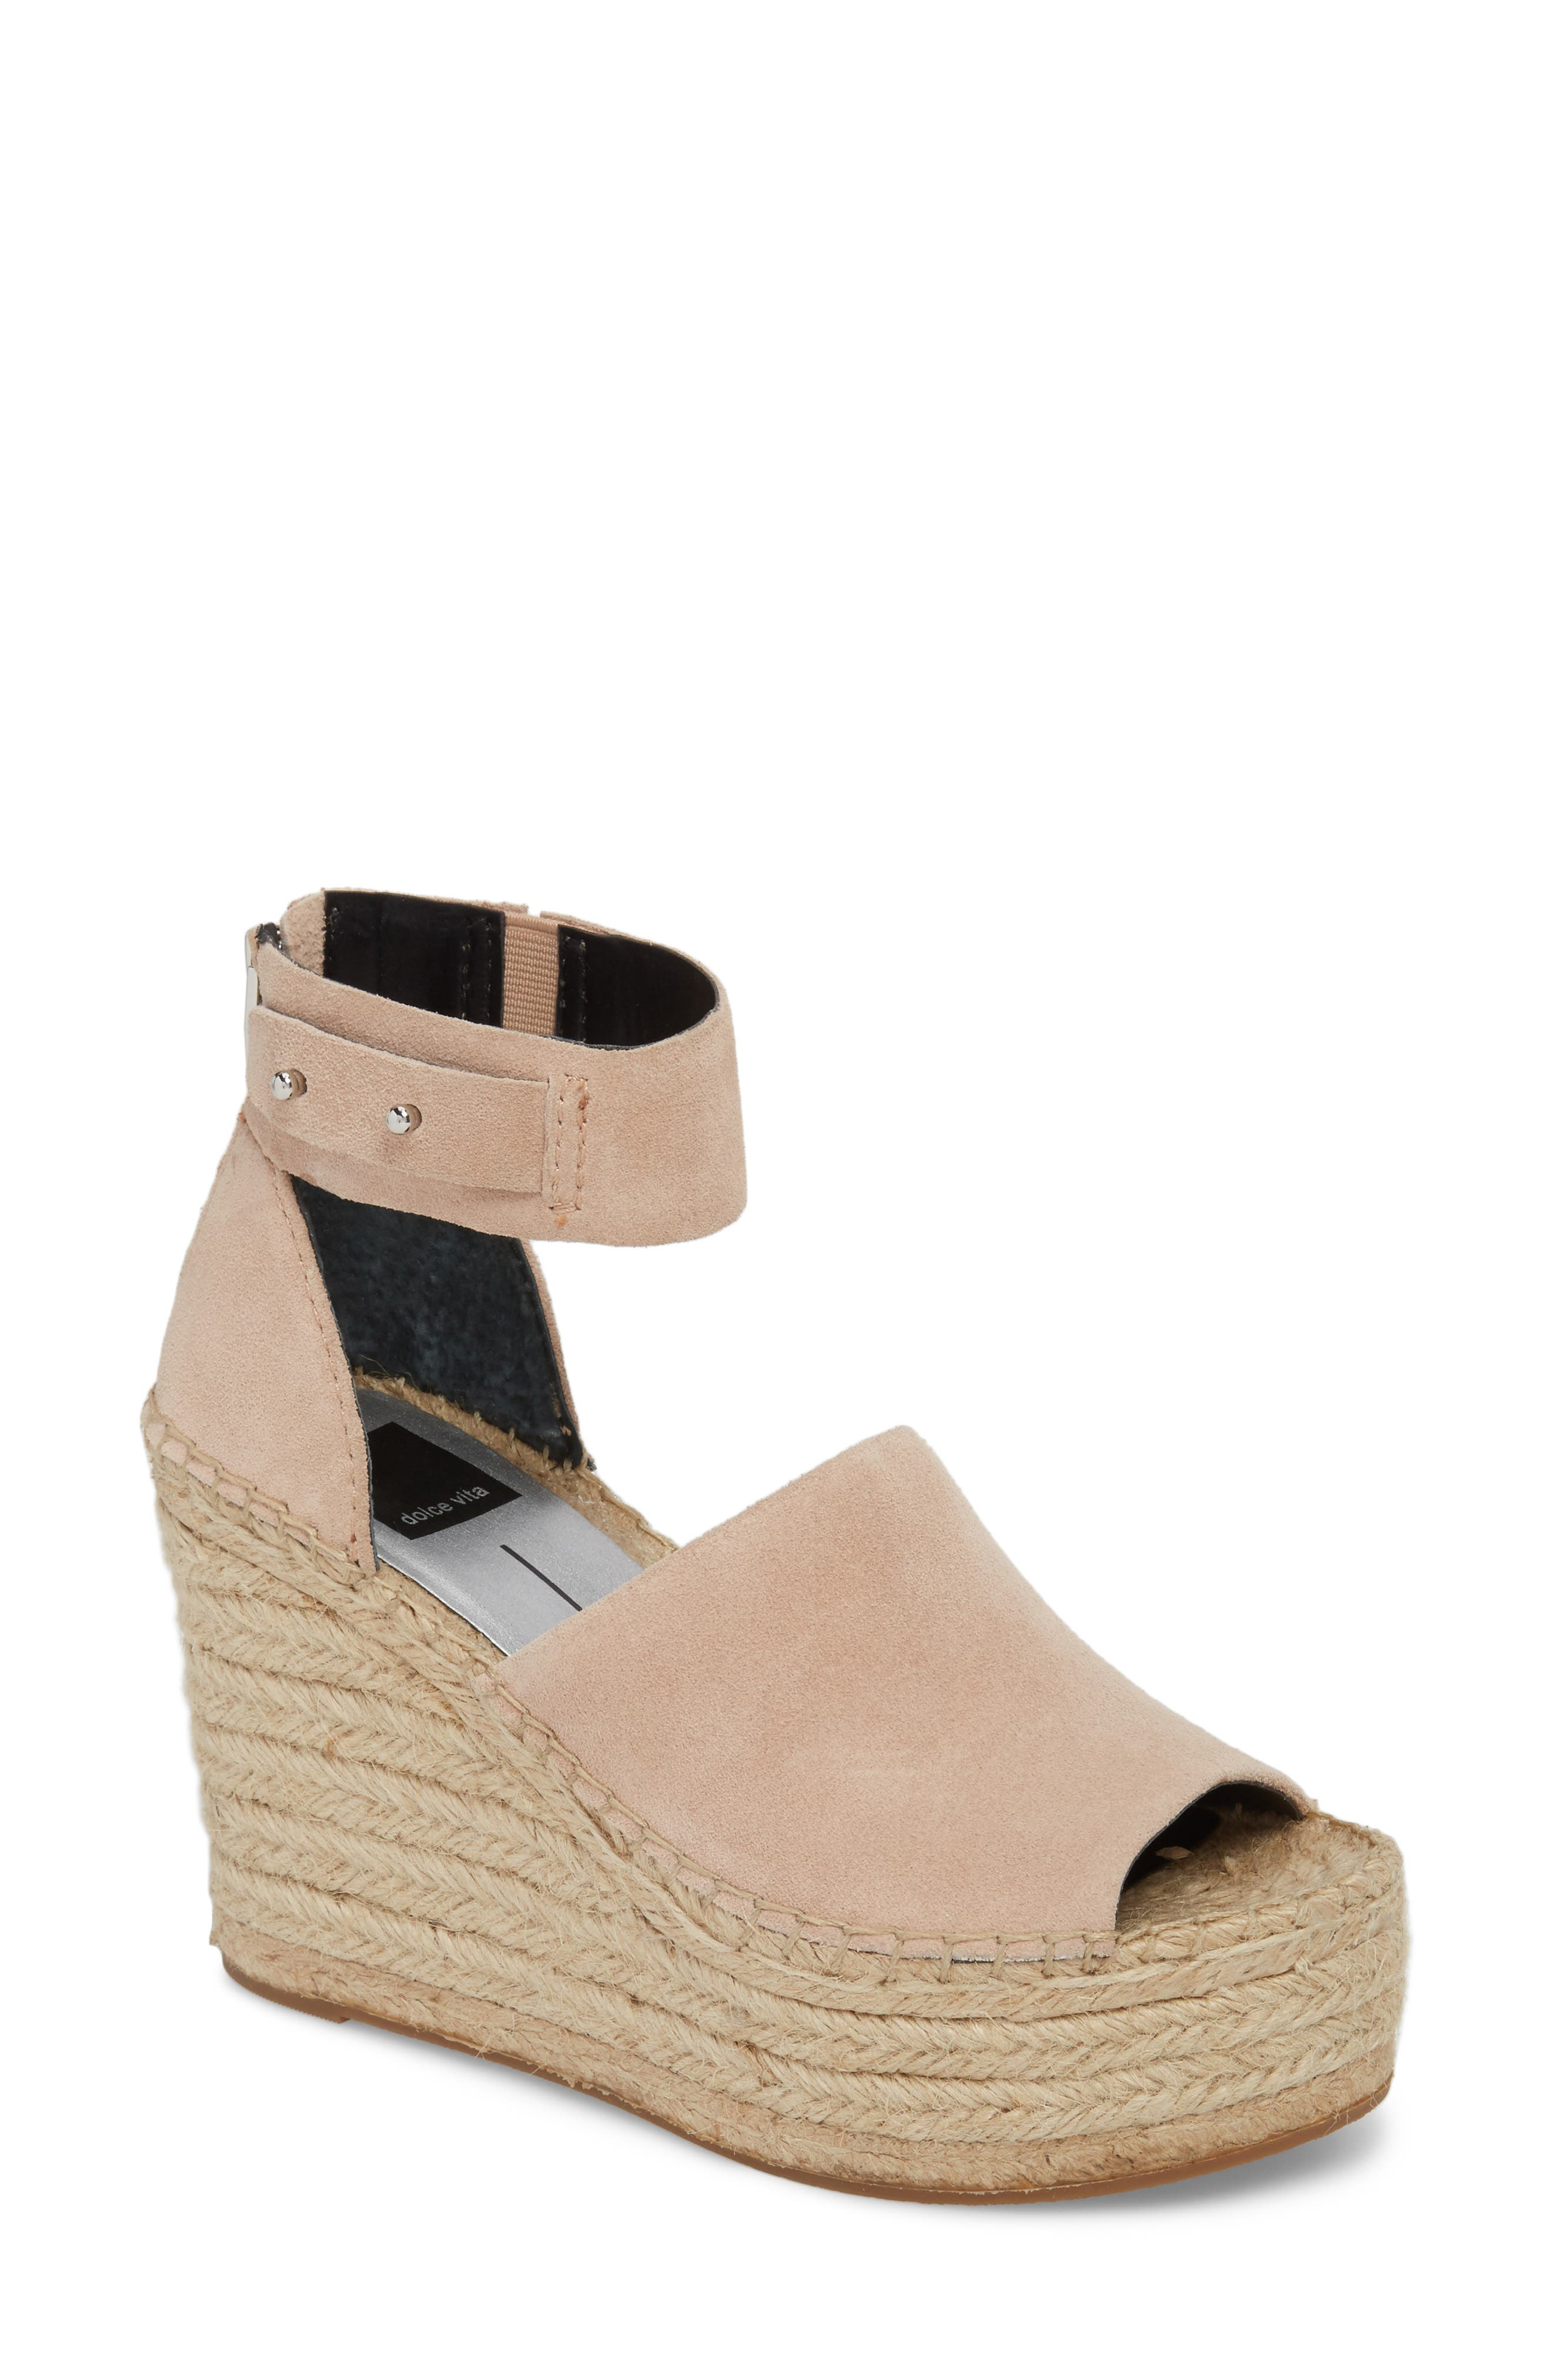 DOLCE VITA Straw Wedge Espadrille Sandal, Main, color, BLUSH